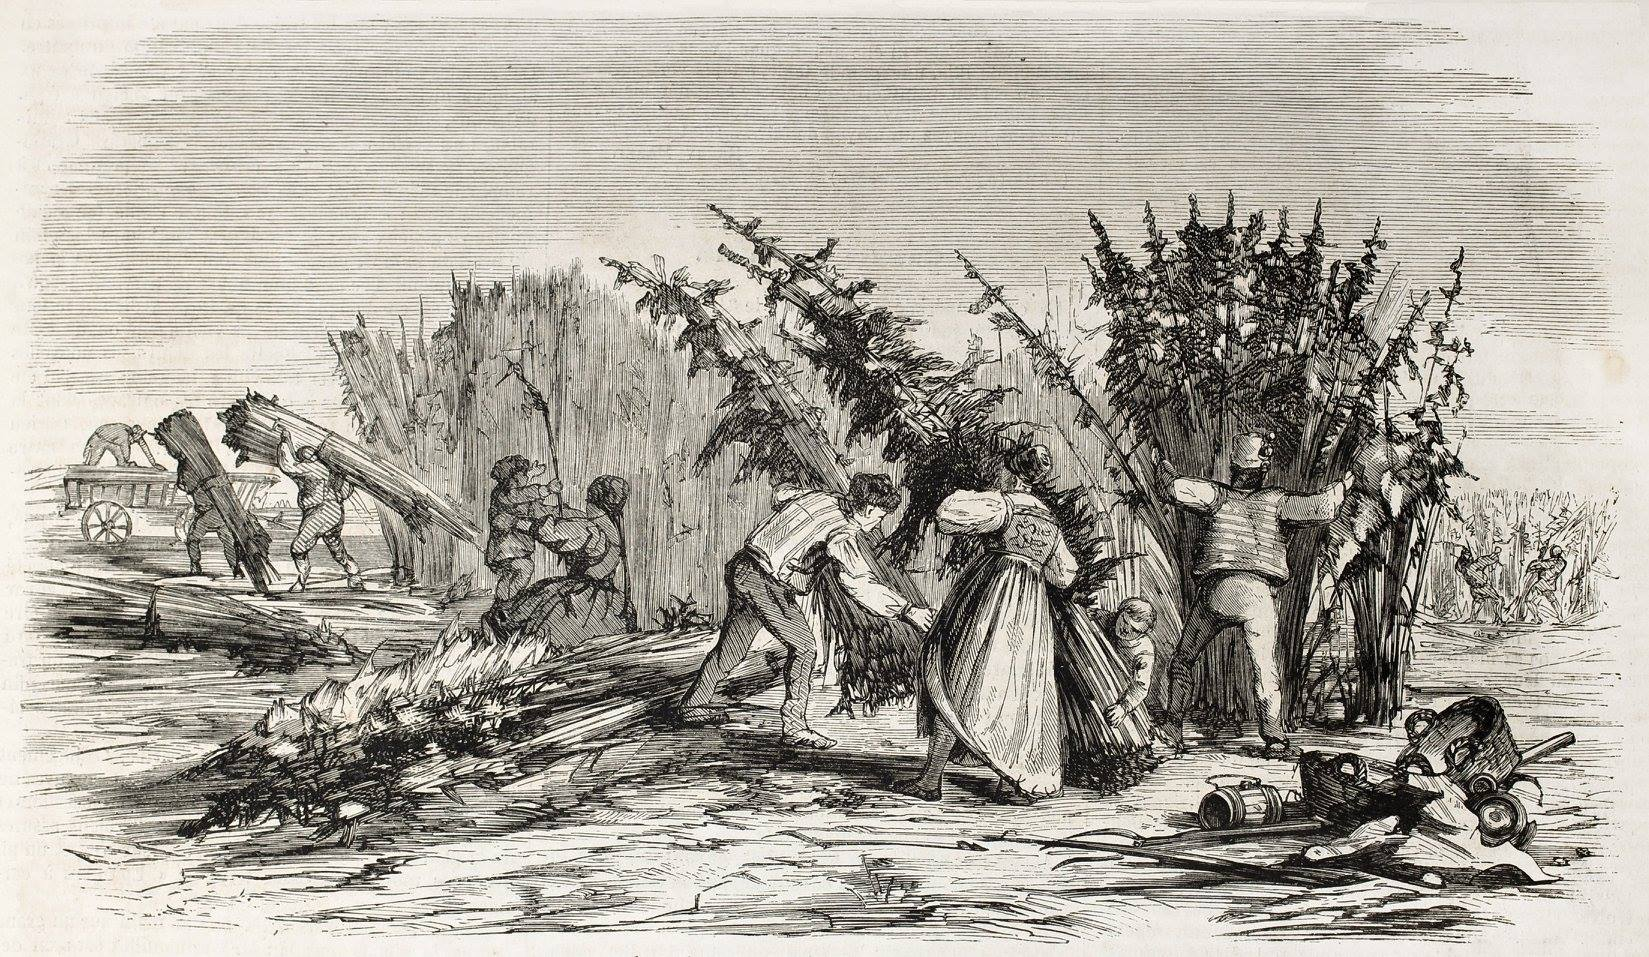 Illustration of History of Cannabis: People harvesting cannabis in America